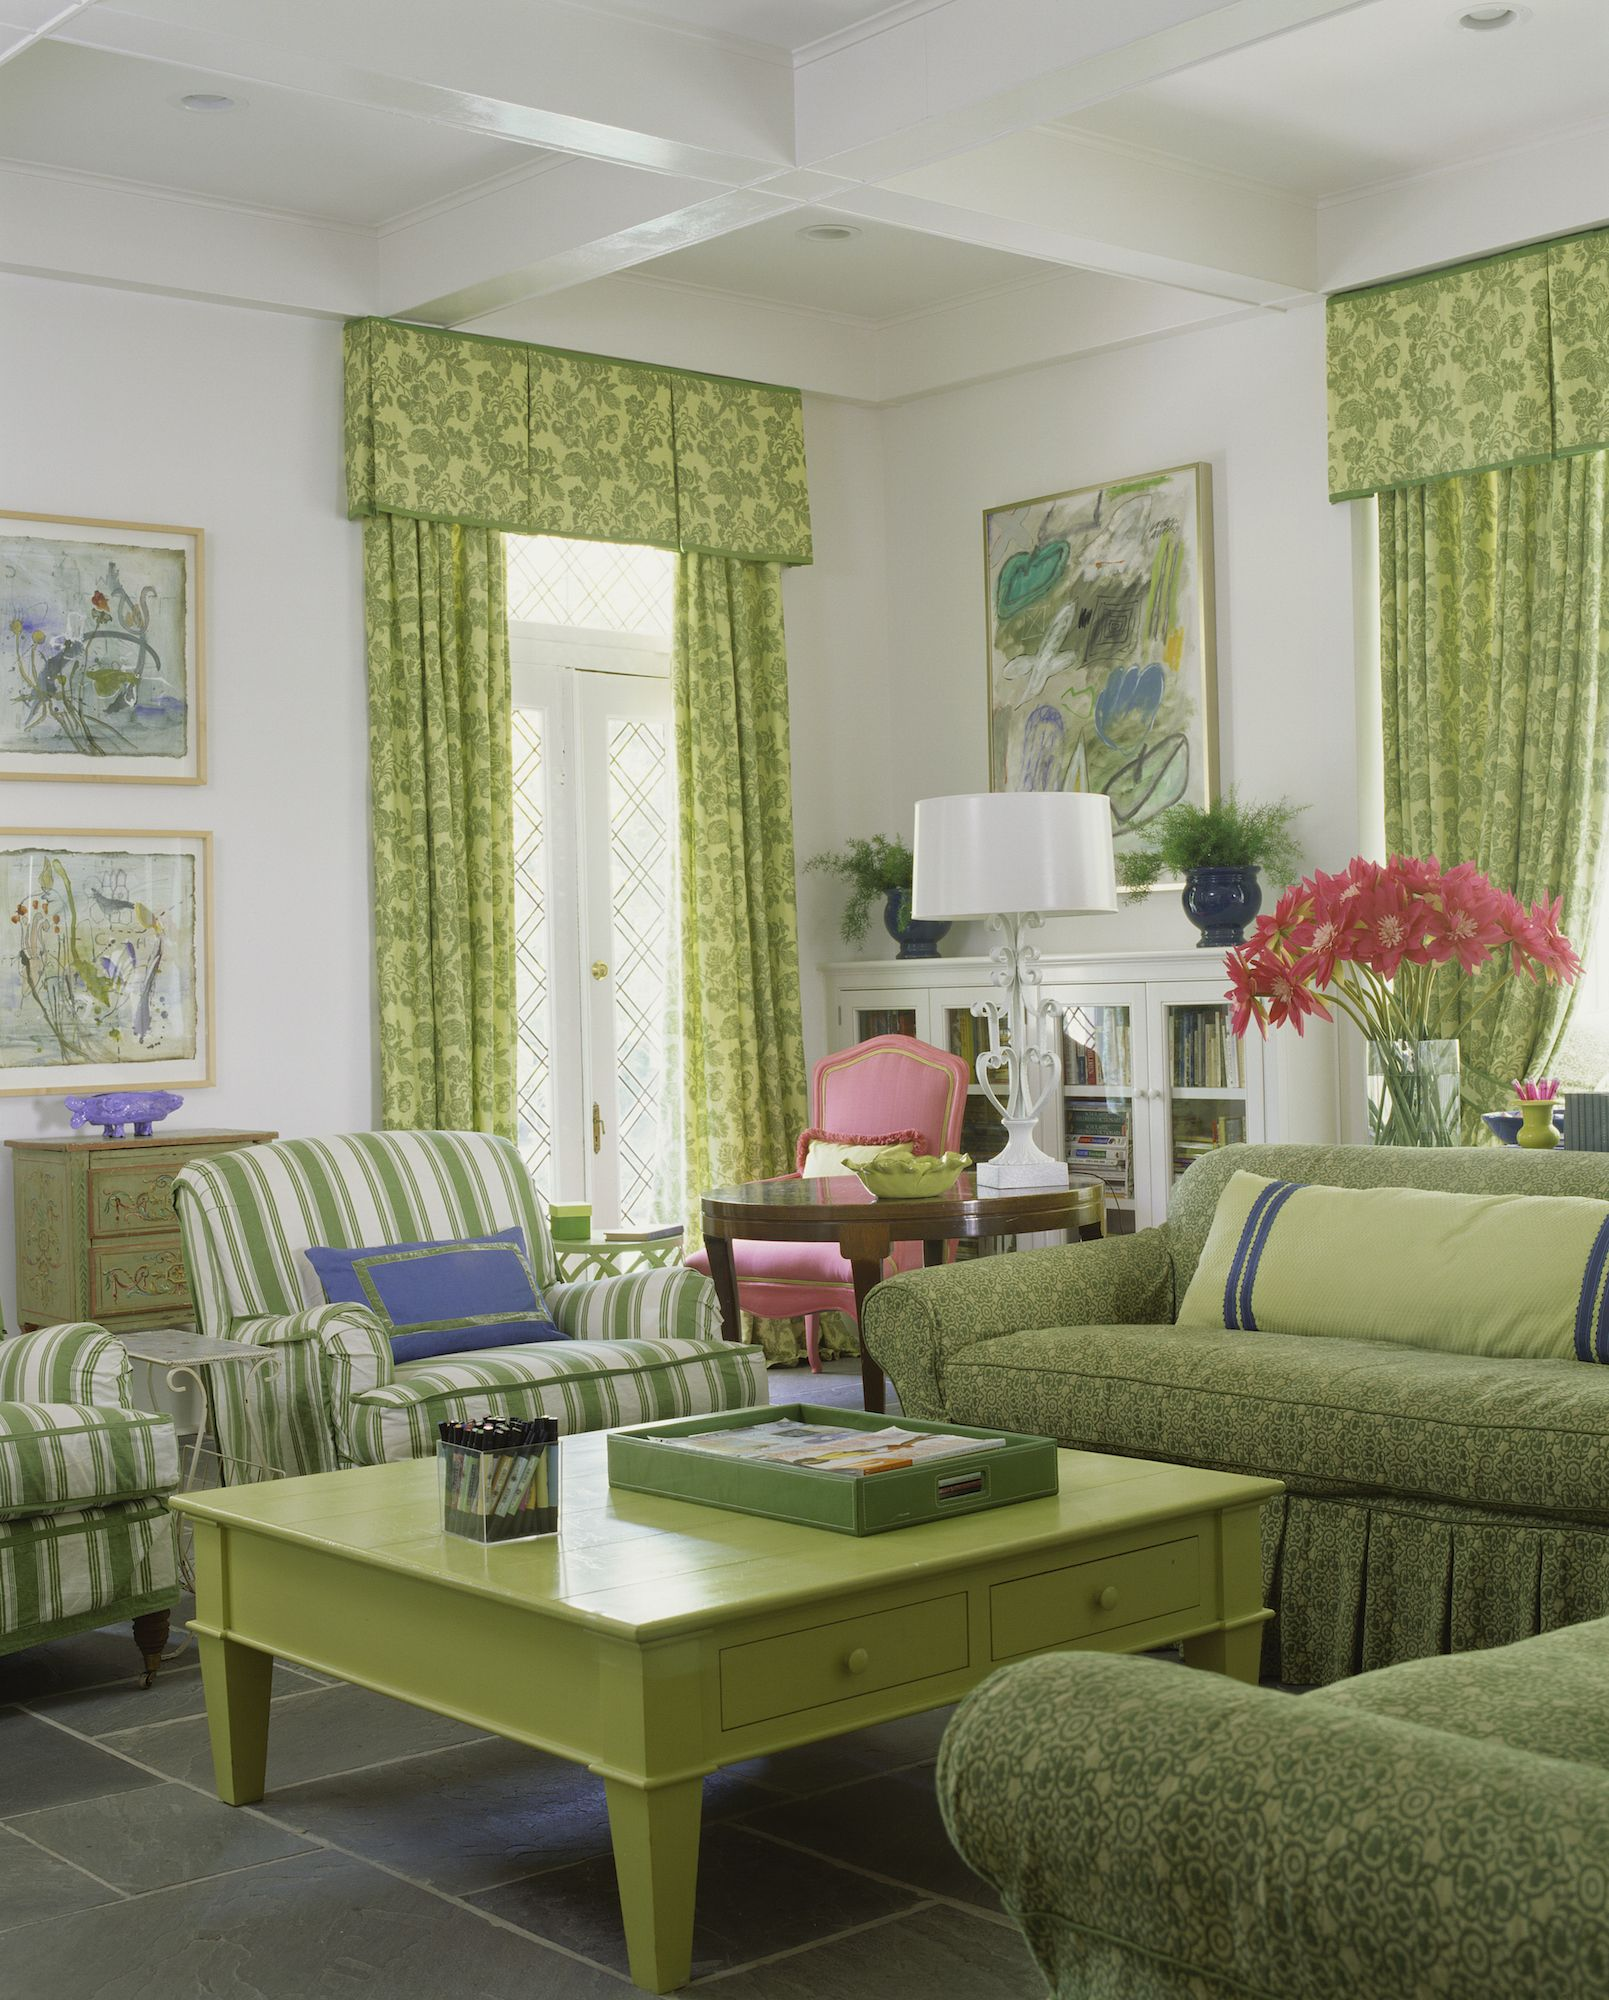 Trends Sofa 40 Decorating Trends That Are Out Most Outdated Home Decor